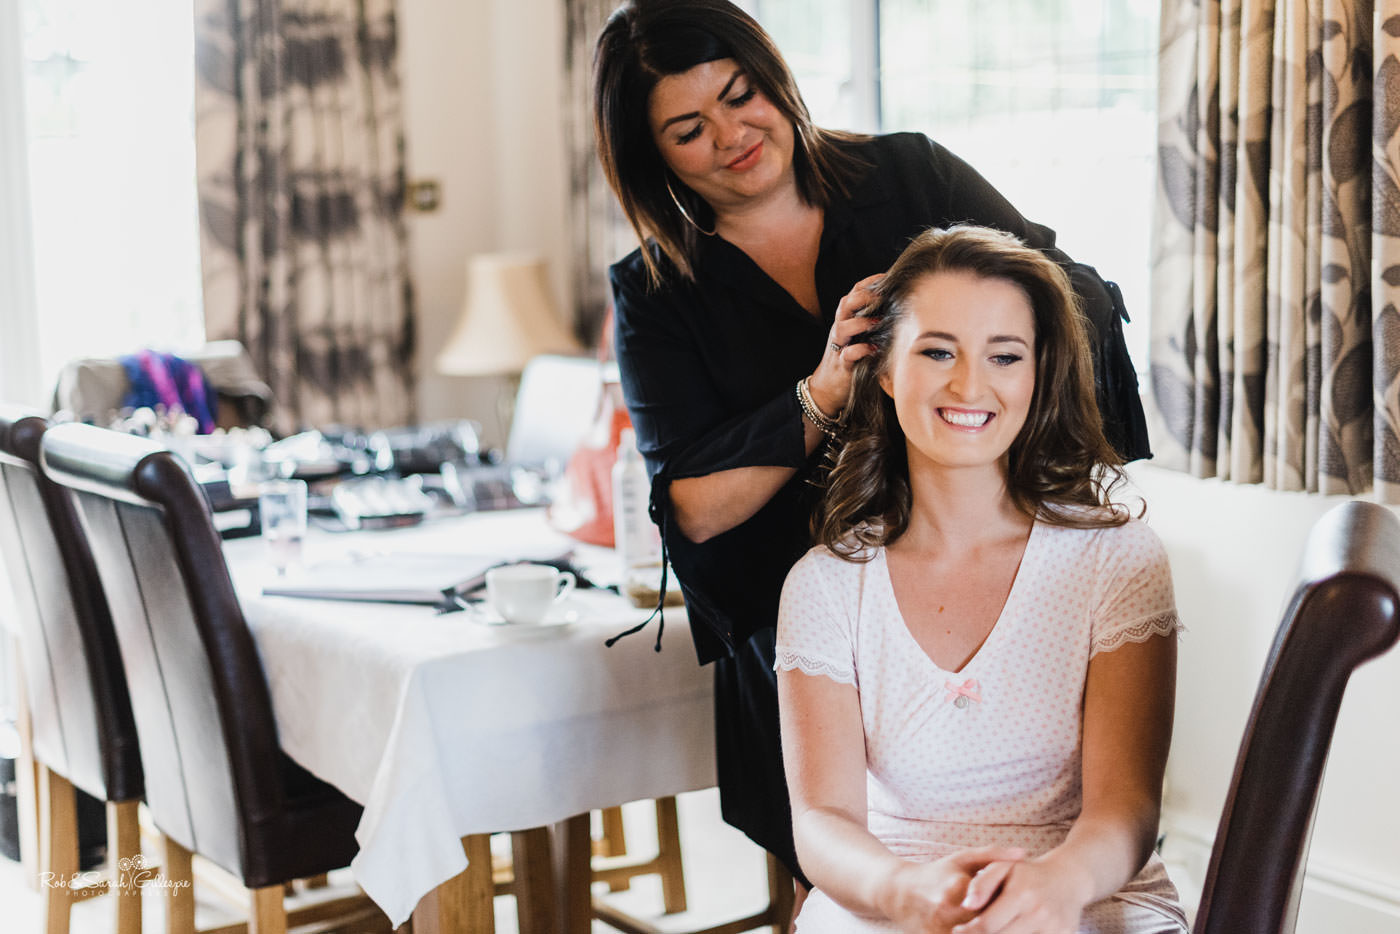 Bride smiling as her hair is styled for wedding